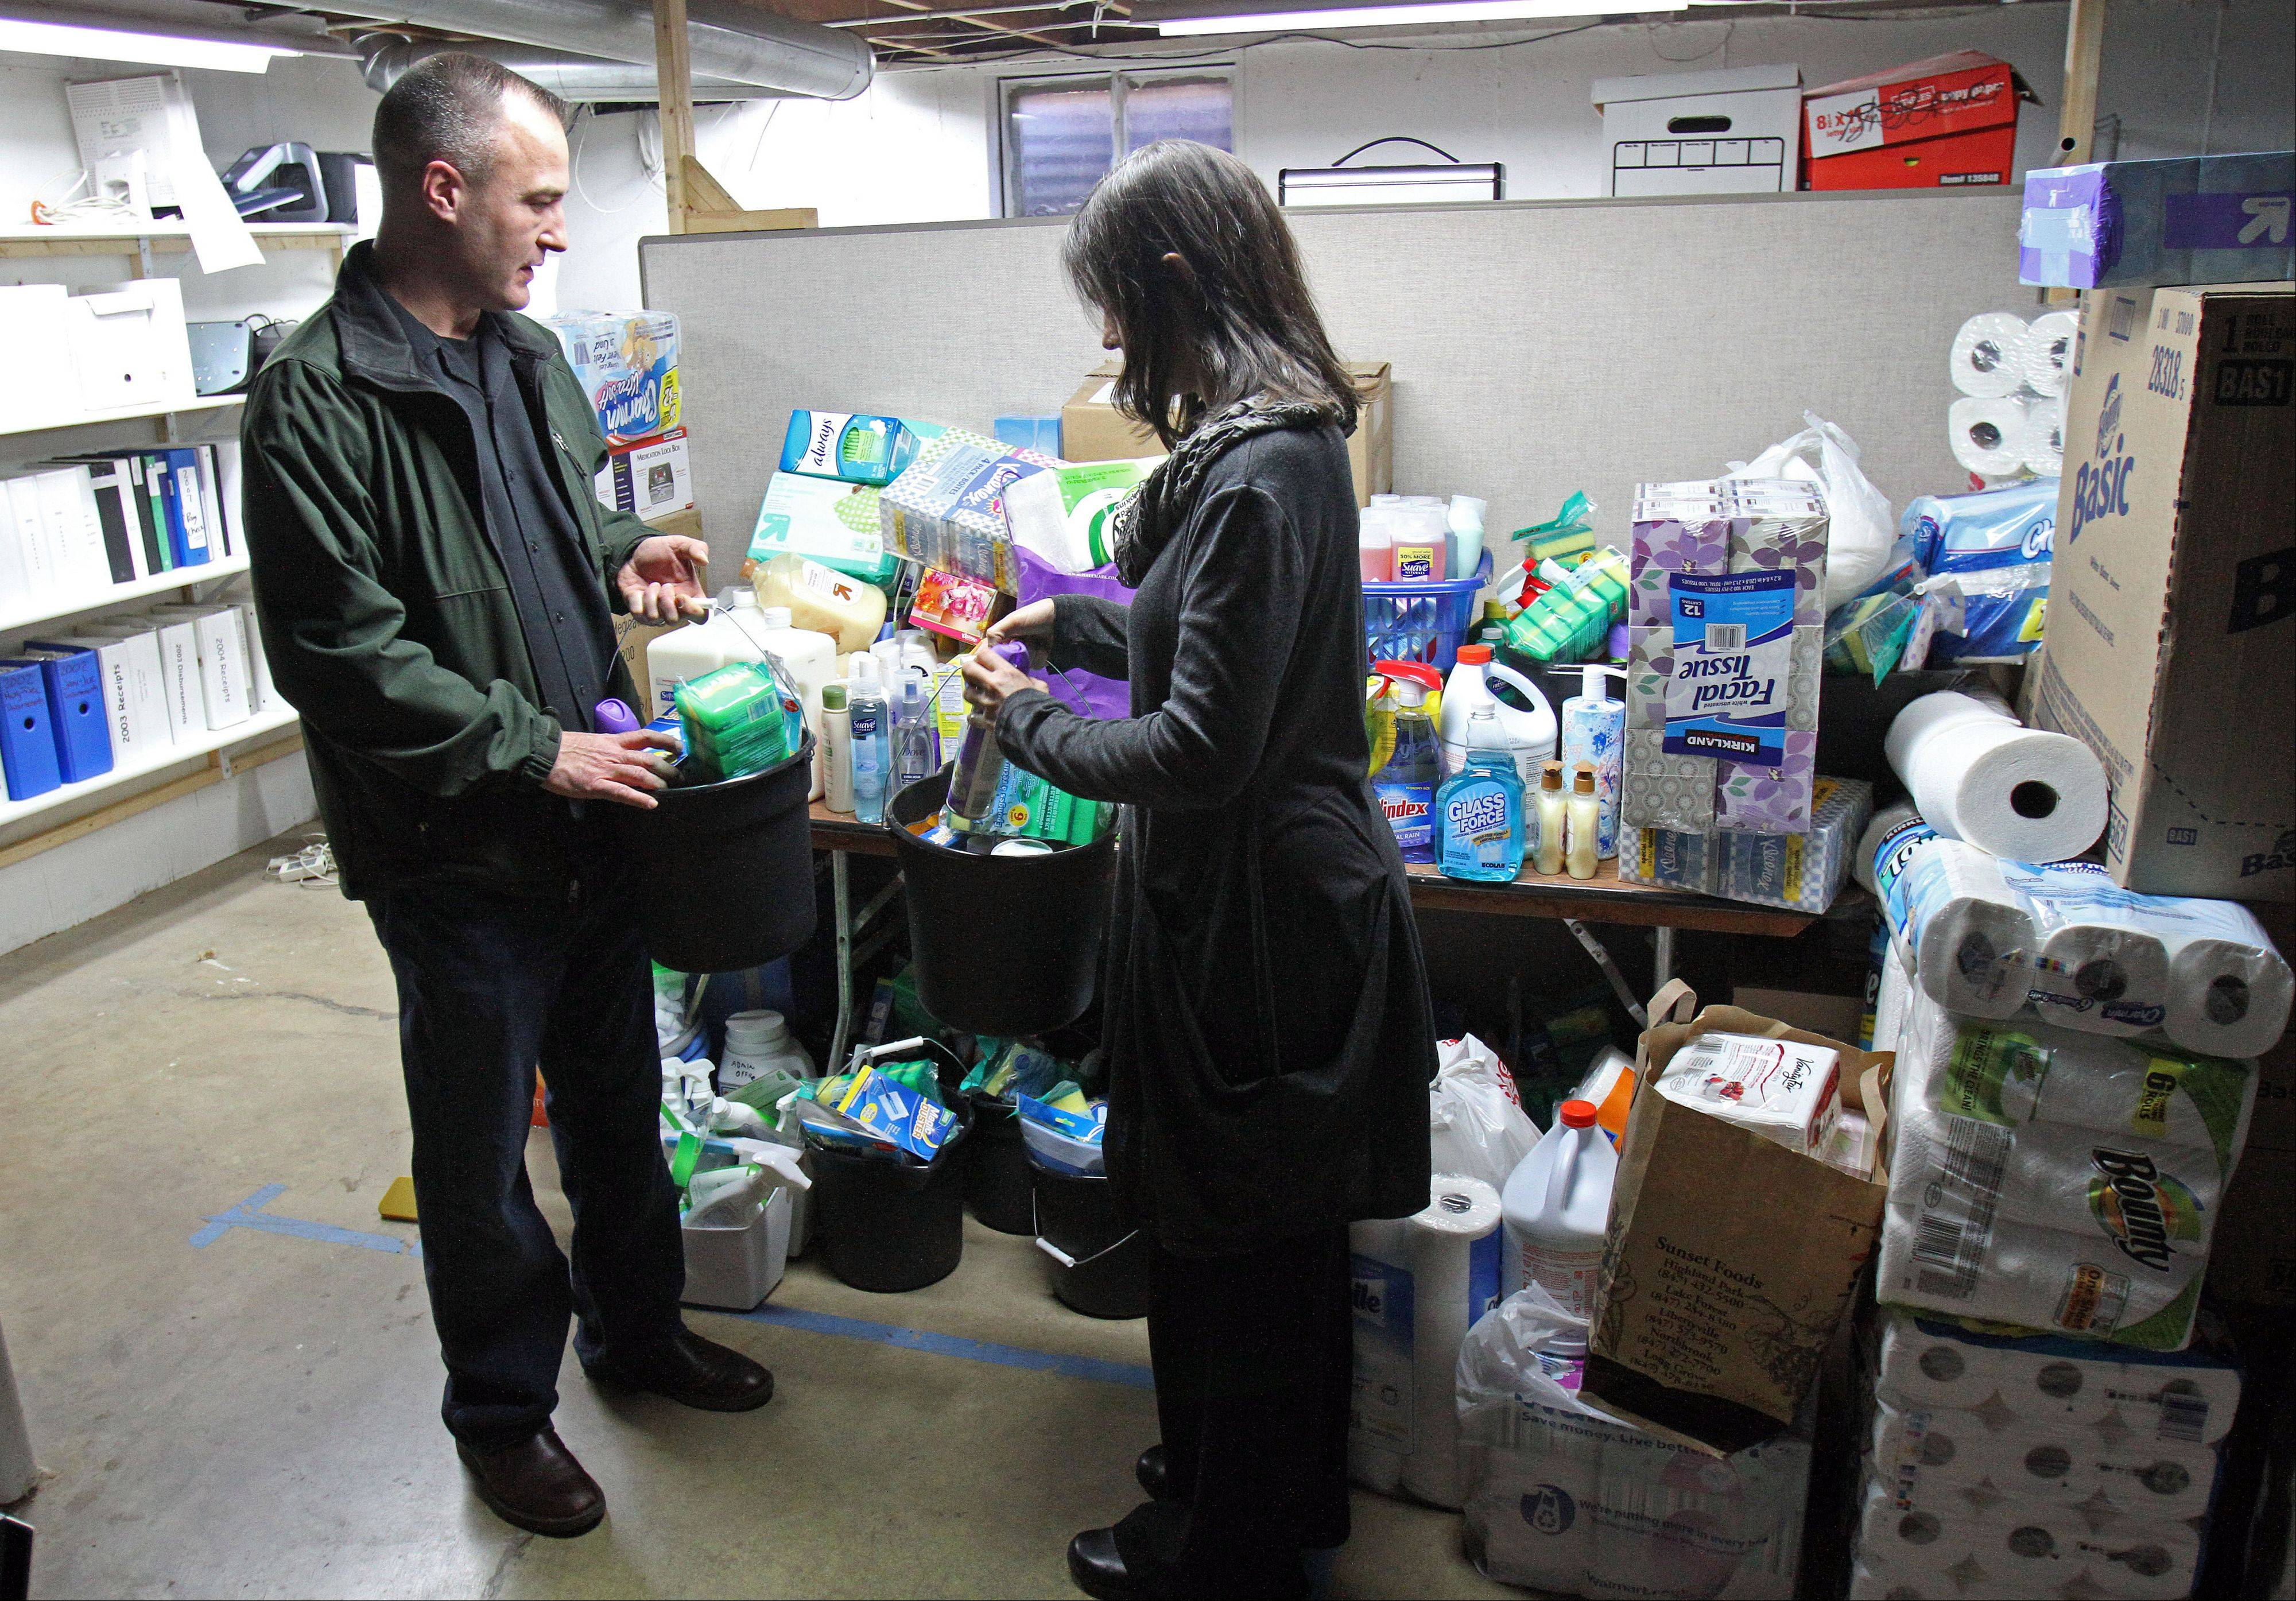 Ken Neumann, left, and Lake County Haven Executive Director Laura Sabino sort through donated items at the women's shelter in Libertyville.